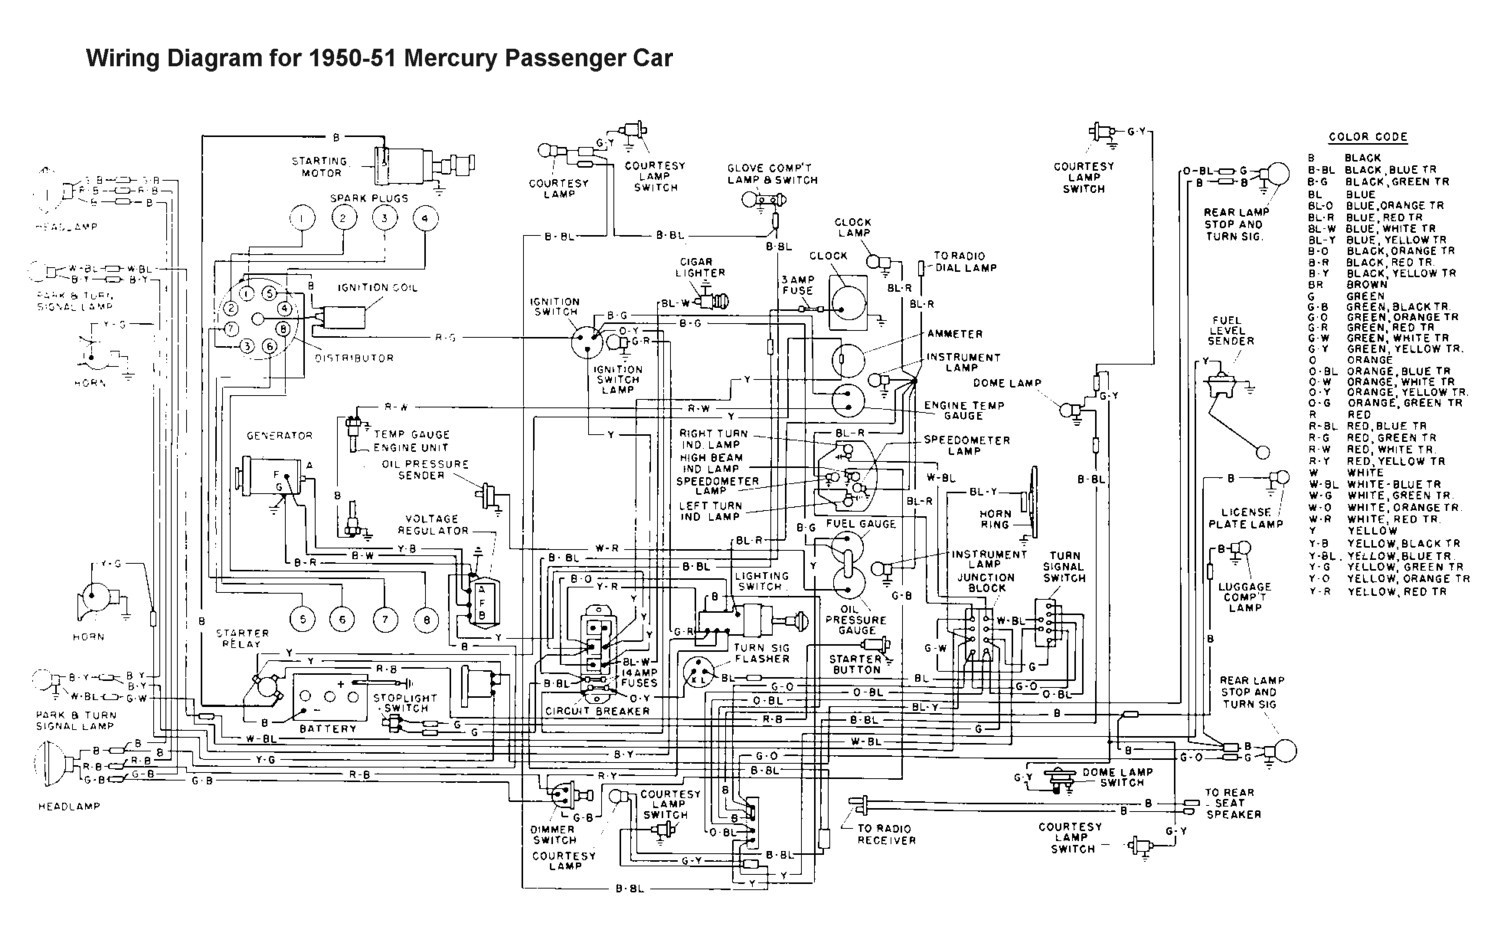 1954 mercury overdrive wiring diagram wiring diagrams schematics rh alexanderblack co and wiring diagram 3-Way Switch Wiring Diagram